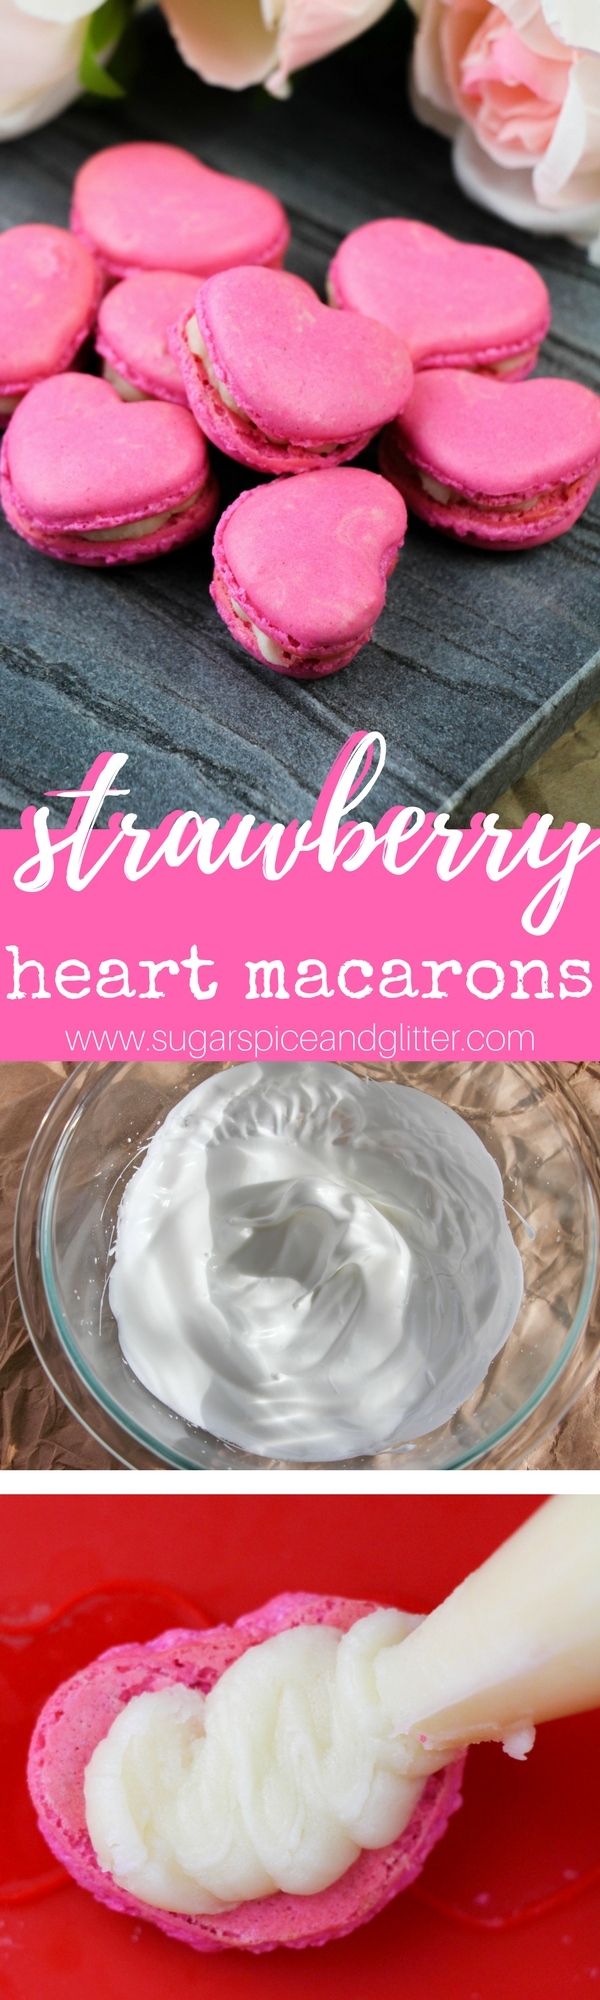 These cute heart-shaped macarons are the easiest macarons you will ever make! Strawberry macarons make a stunning Valentine's dessert, bridal shower dessert, or homemade anniversary gift